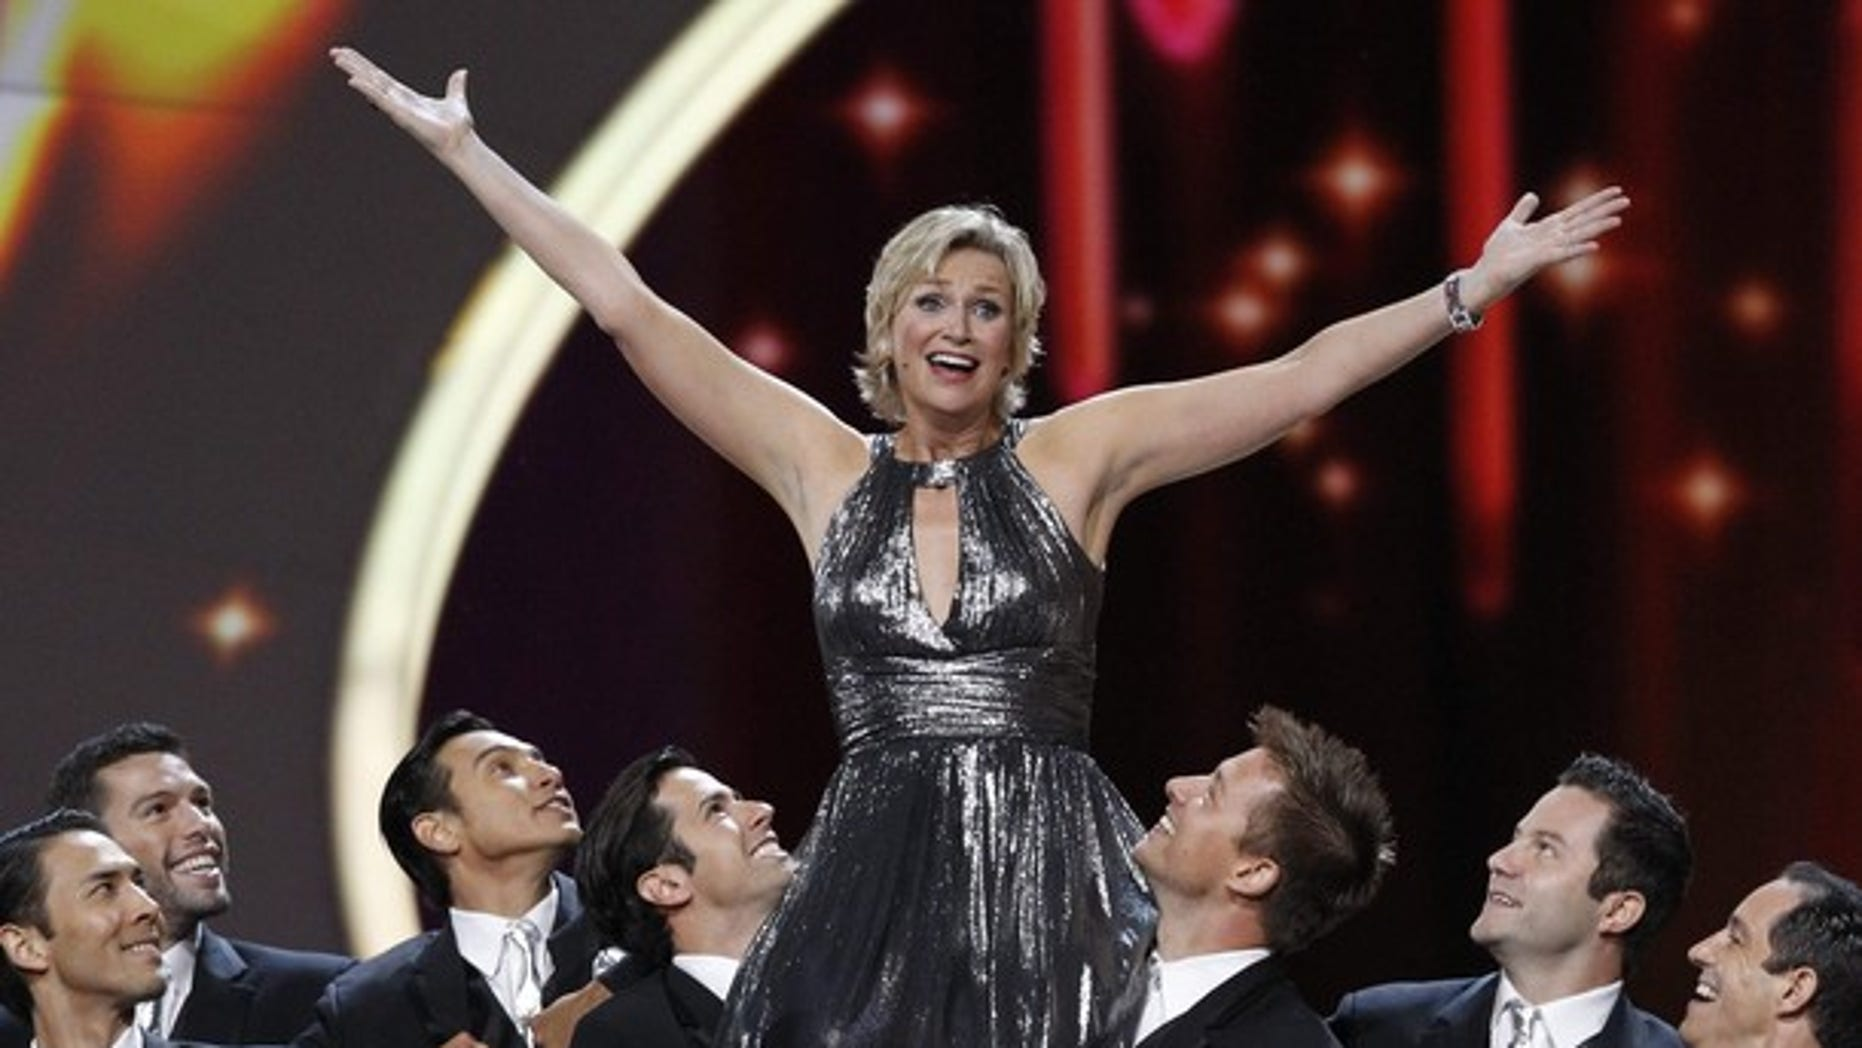 Jane Lynch performs at the Emmys (Reuters)